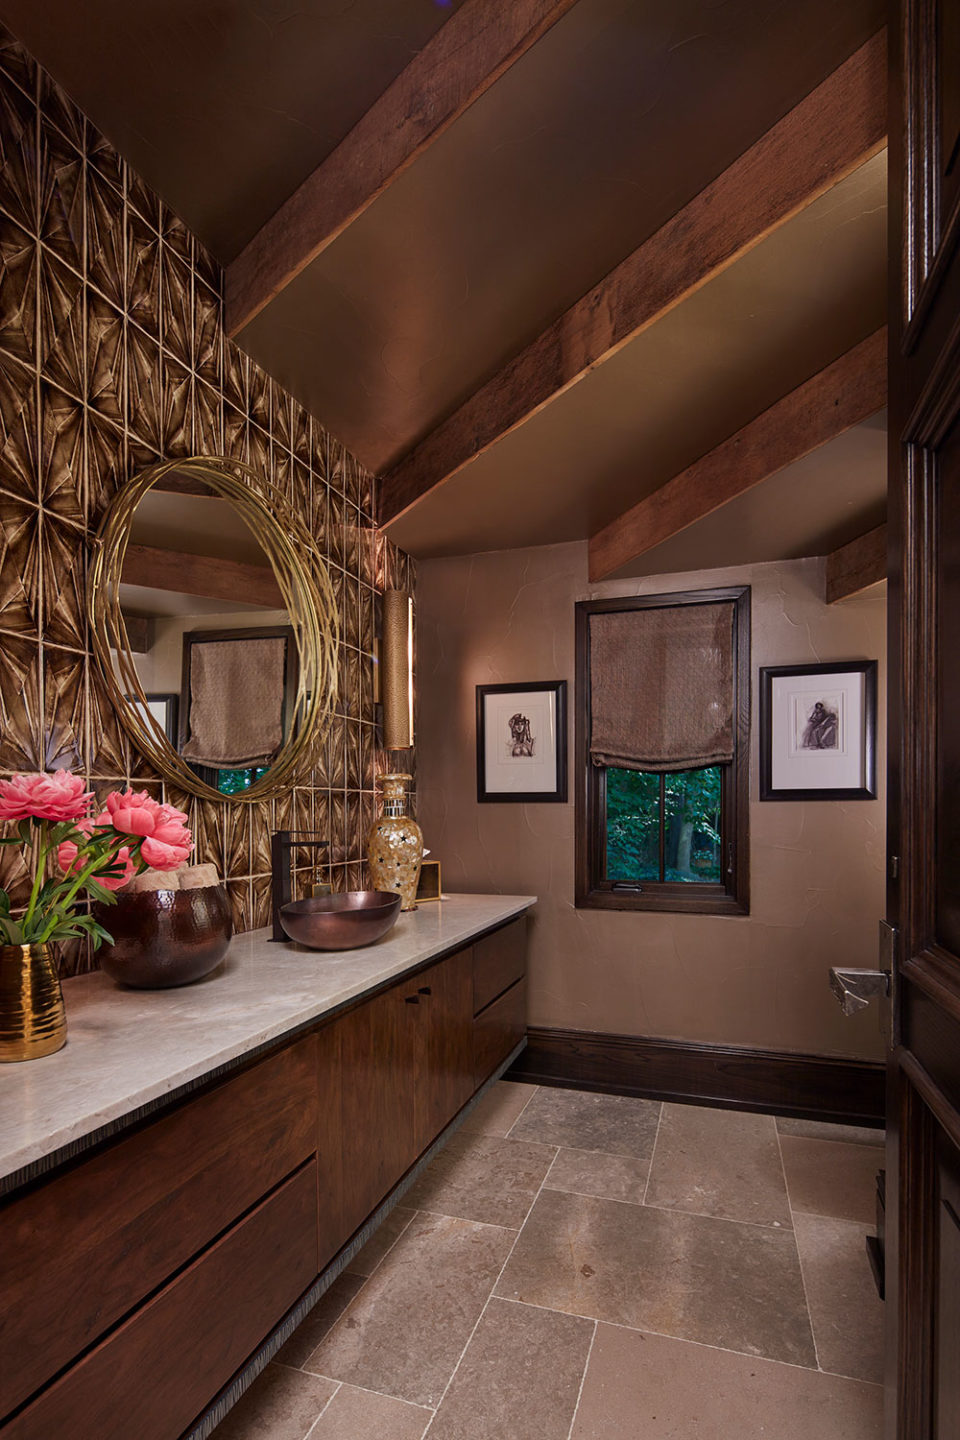 Powder Room with Bronze Vessel Sink, Tile Wall and Gold Mirror